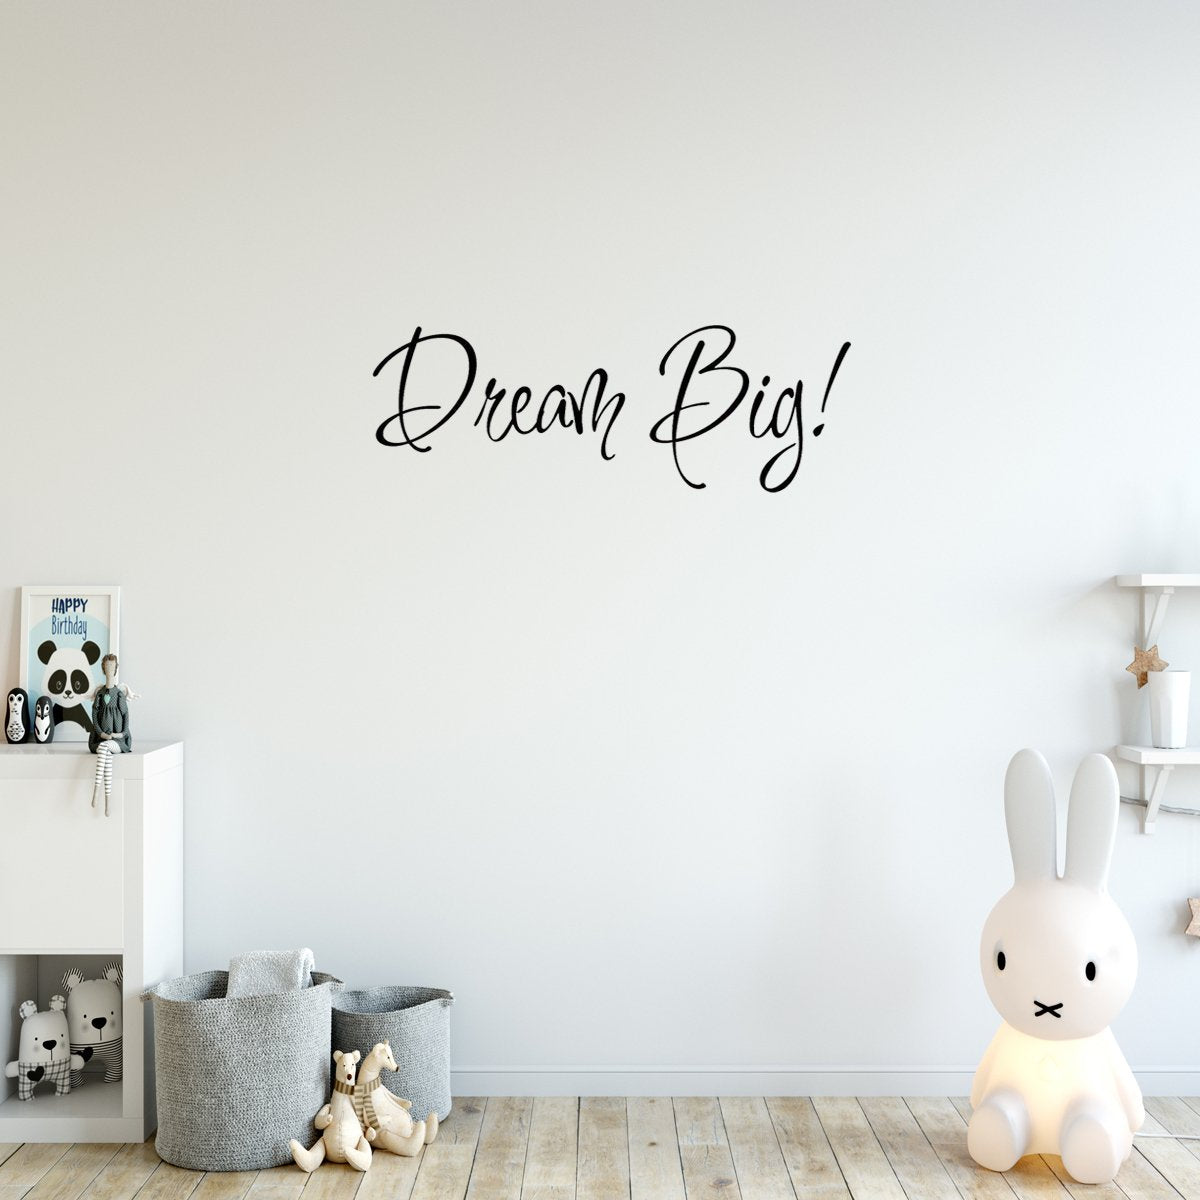 VWAQ Dream Big! Inspirational Vinyl Wall Art Quotes Decal - VWAQ Vinyl Wall Art Quotes and Prints